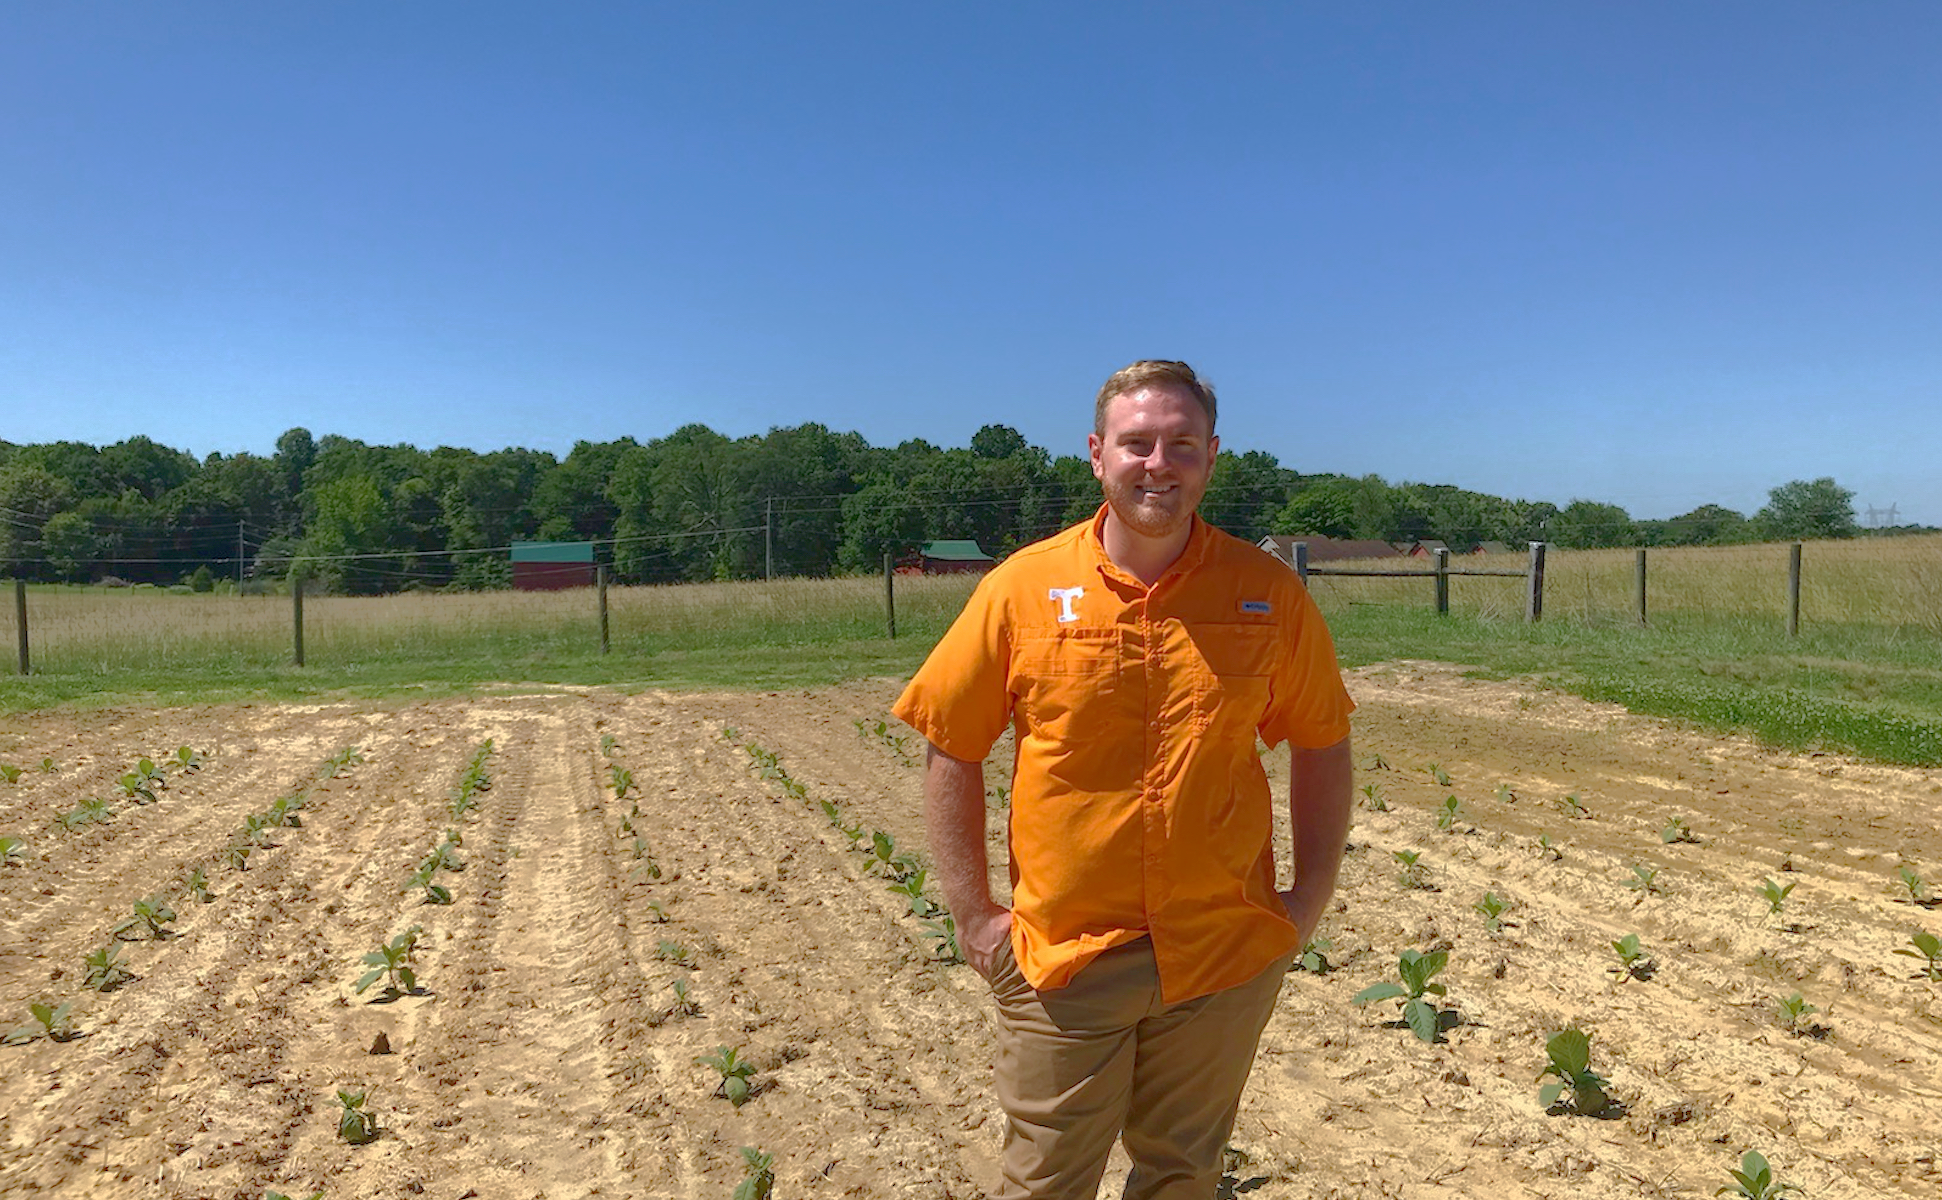 Associate professor Mitchell Richmond stands in front of a field at the Northeast Research and Education Center